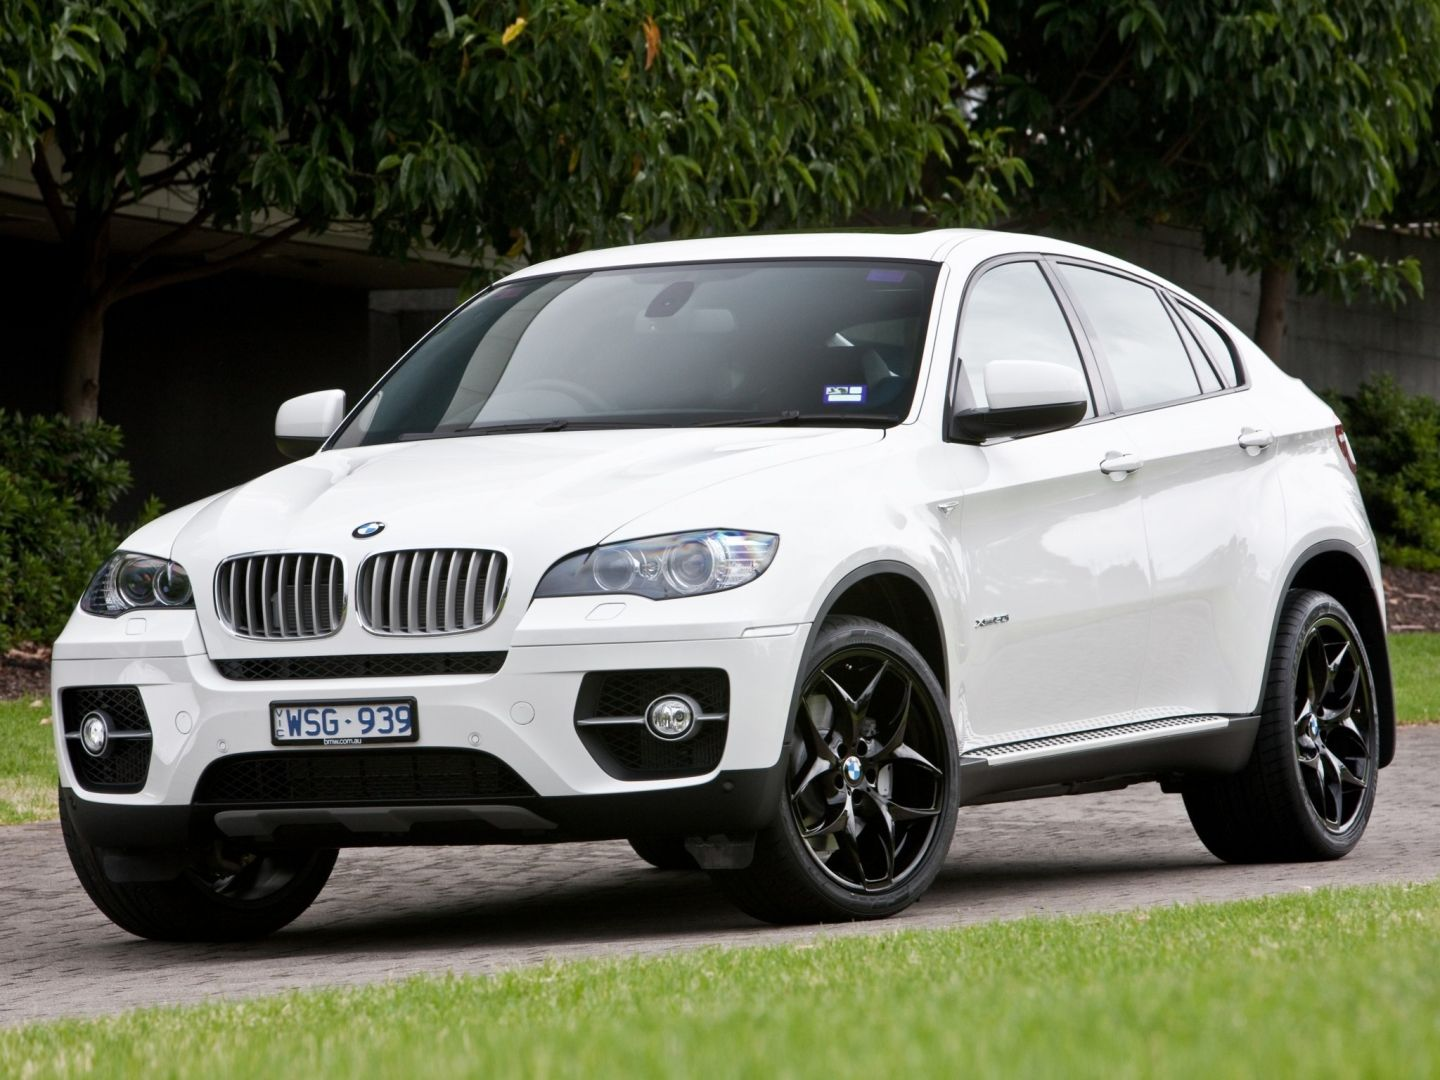 Bmw X6 E71 Specs Amp Photos 2010 2011 2012 2013 2014